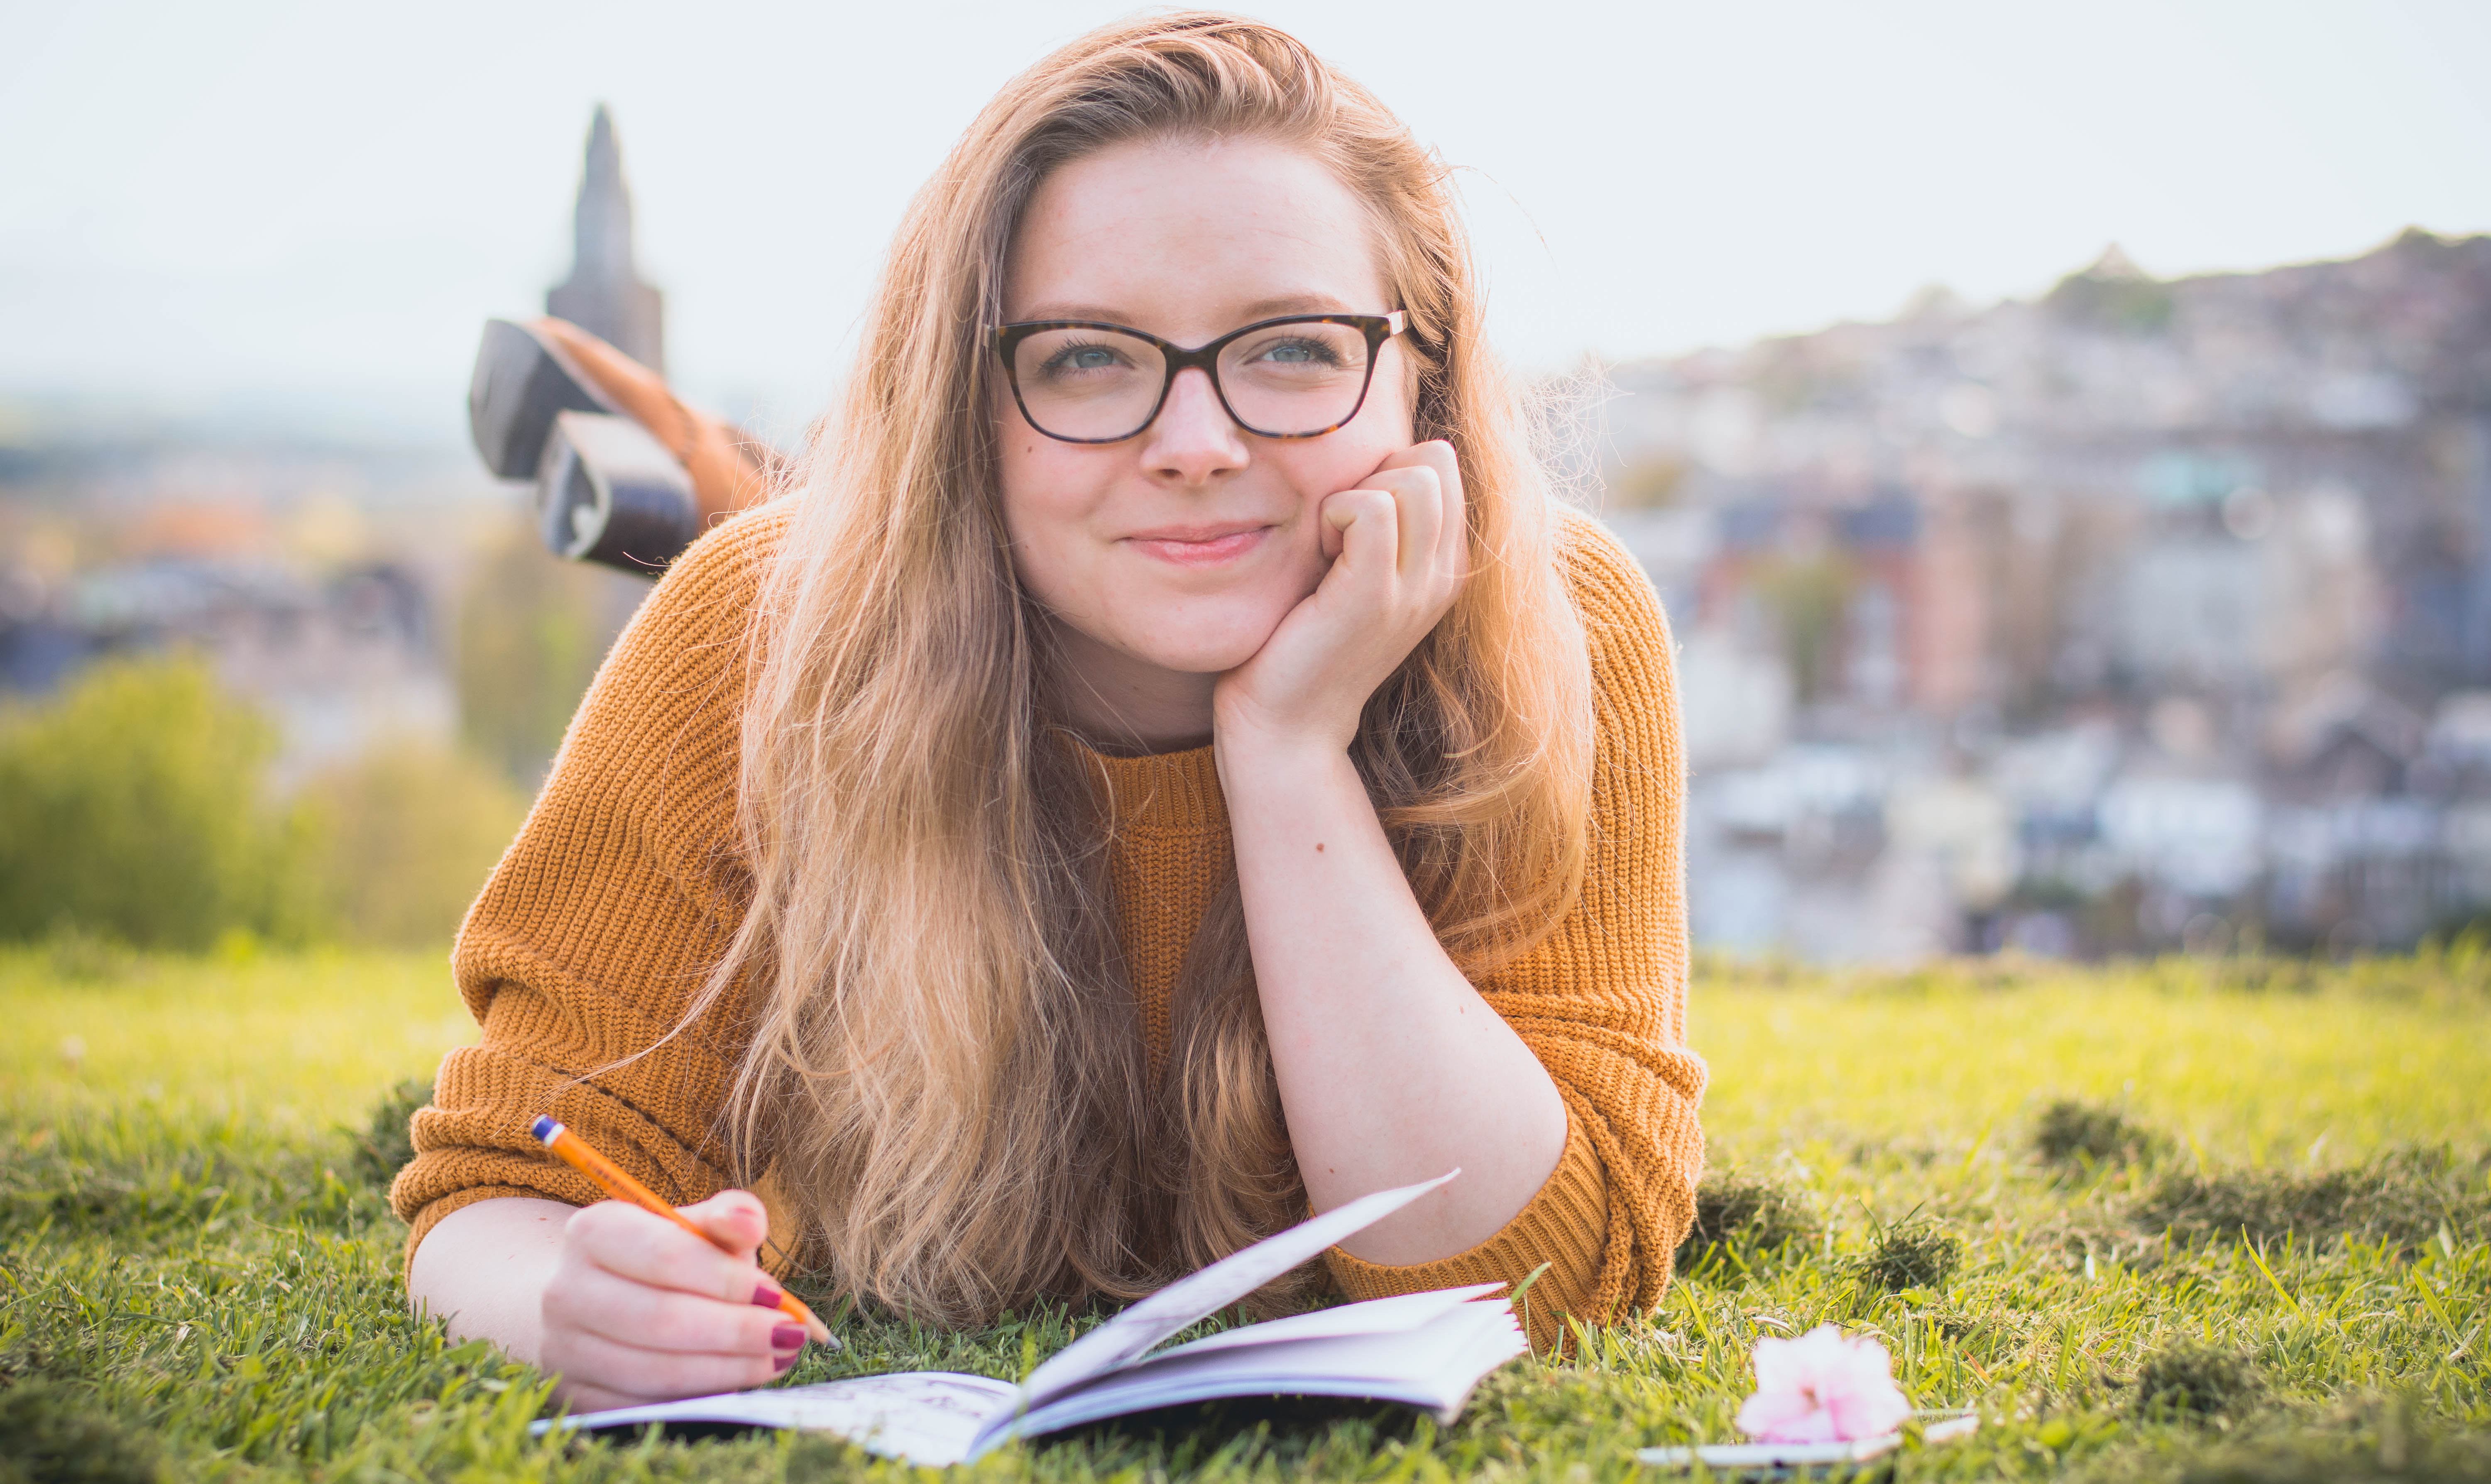 https://www.pexels.com/photo/woman-lying-on-green-grass-while-holding-pencil-1458318/